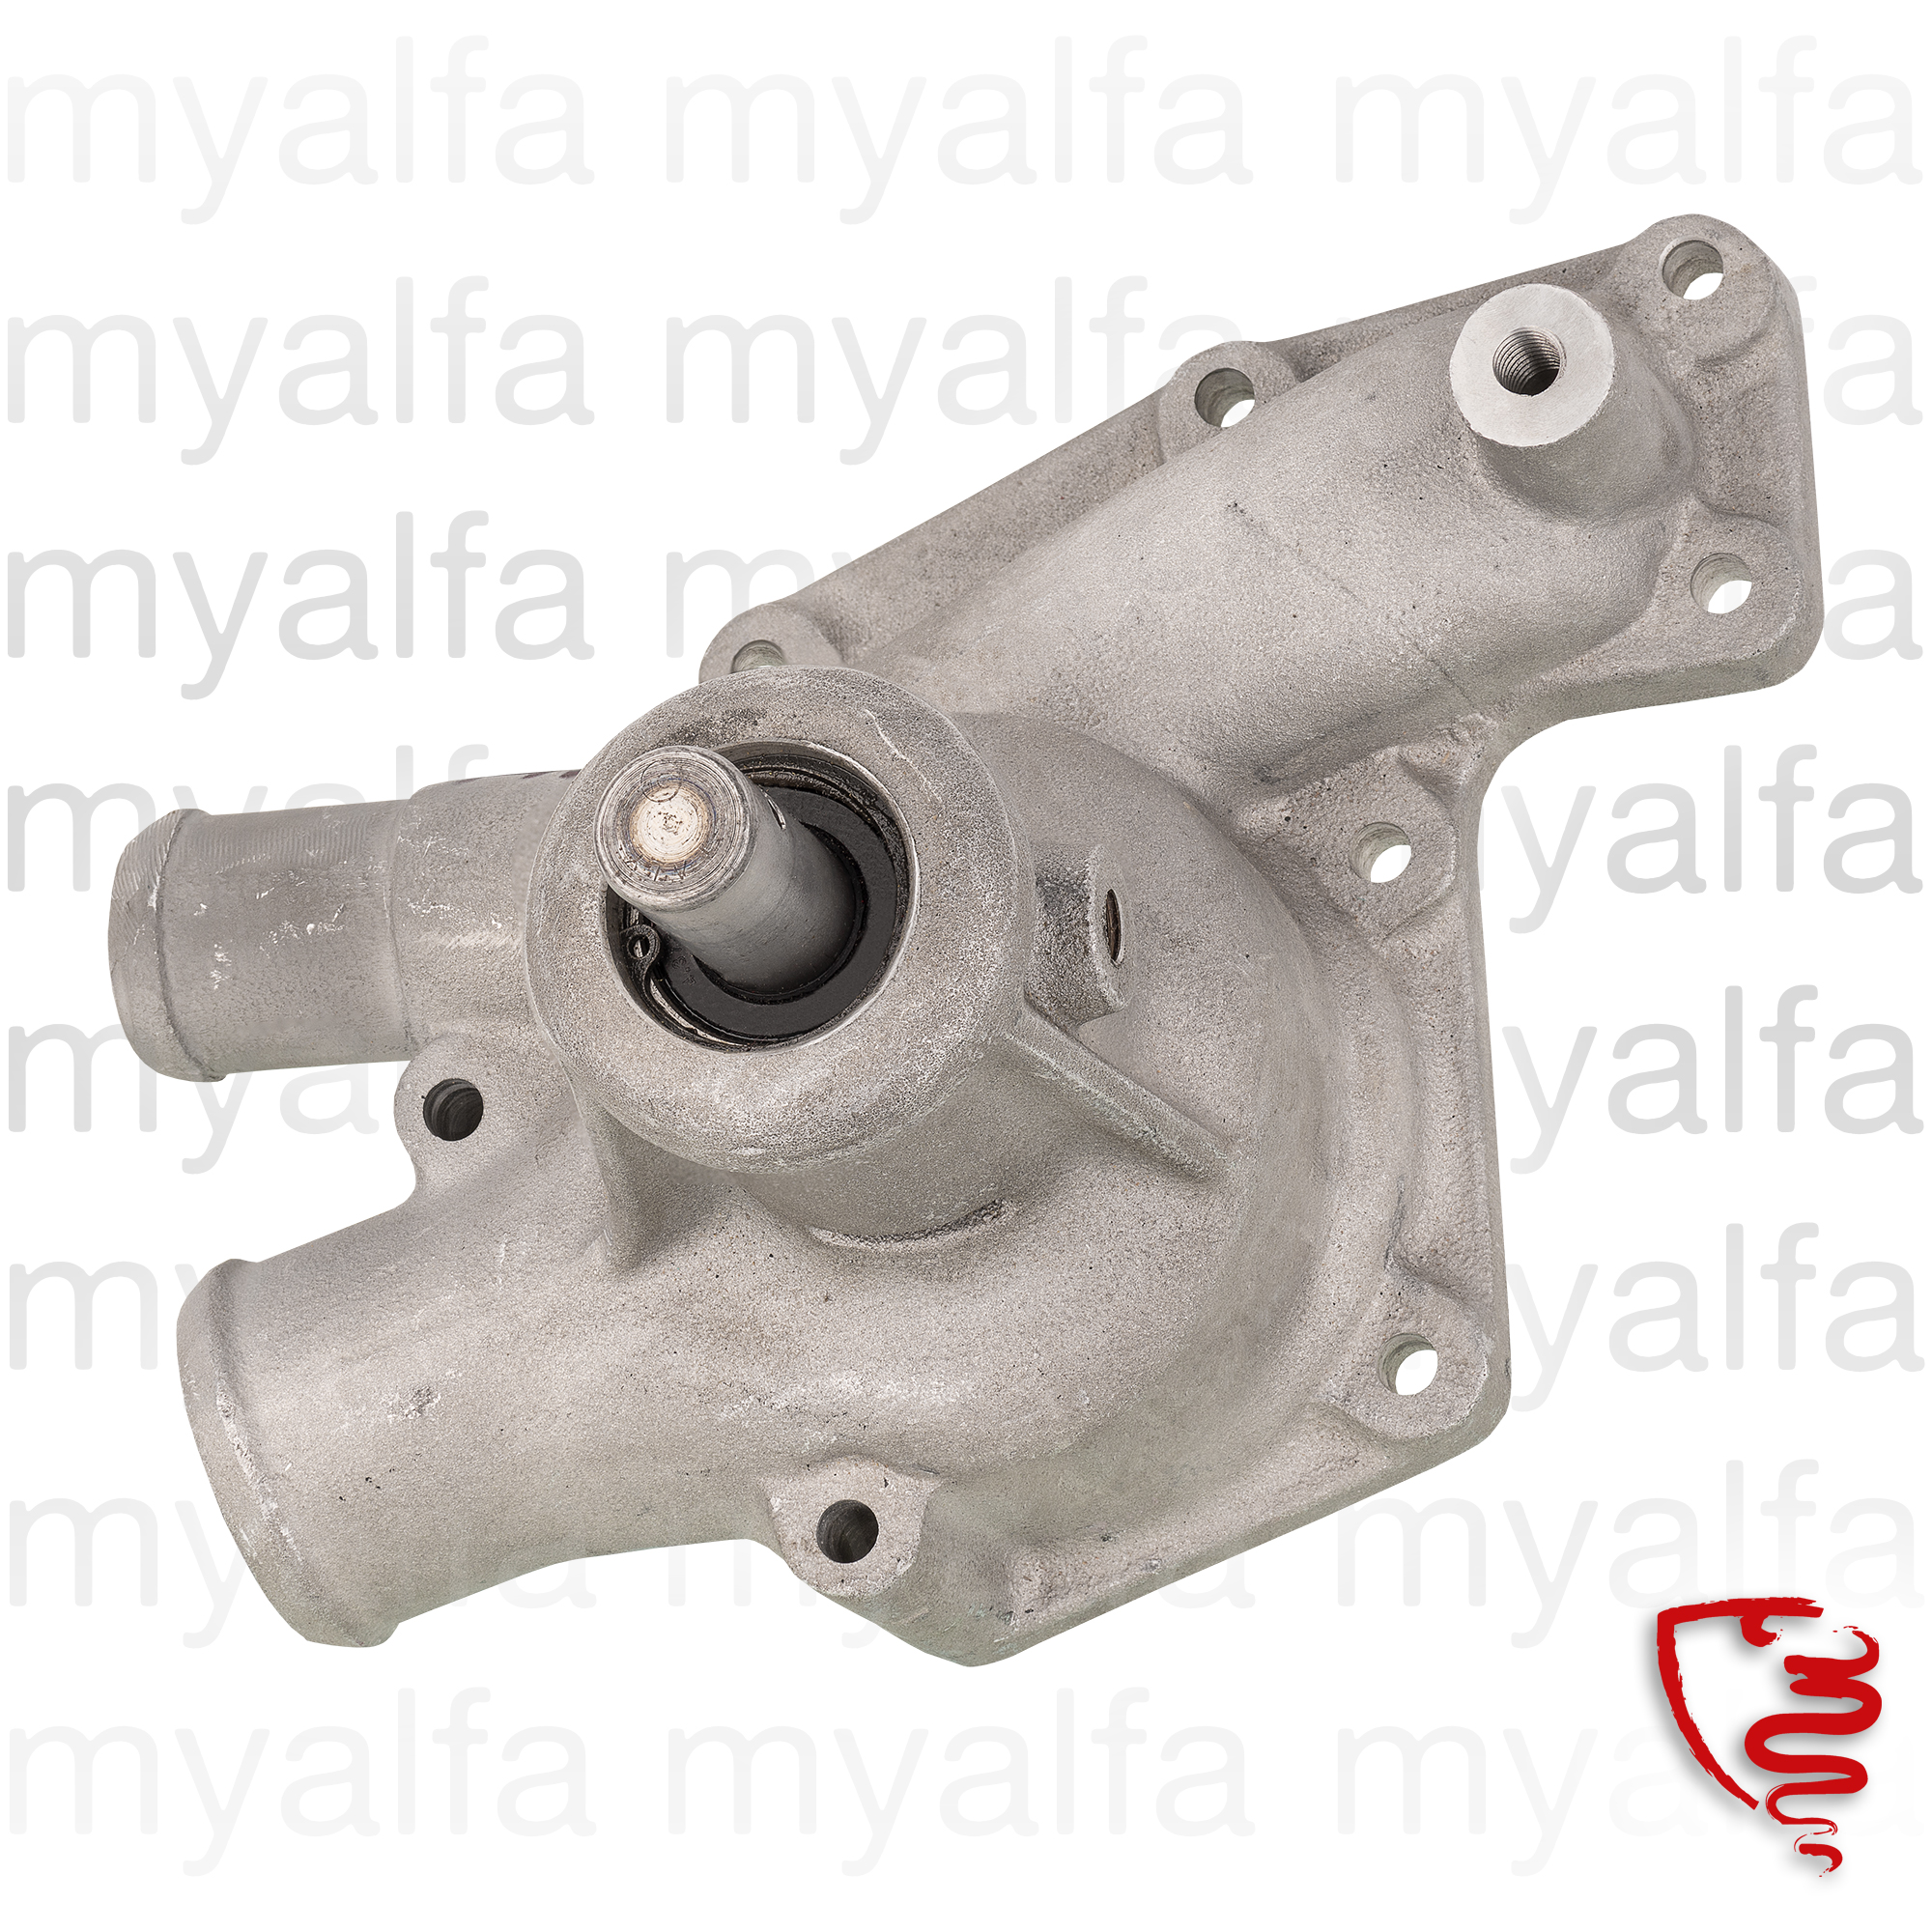 Water pump type 2000 102 for 102/106, 2000 Sprint, 2000 Spider Touring, 2000 Berlina, Cooling System, Waterpumps